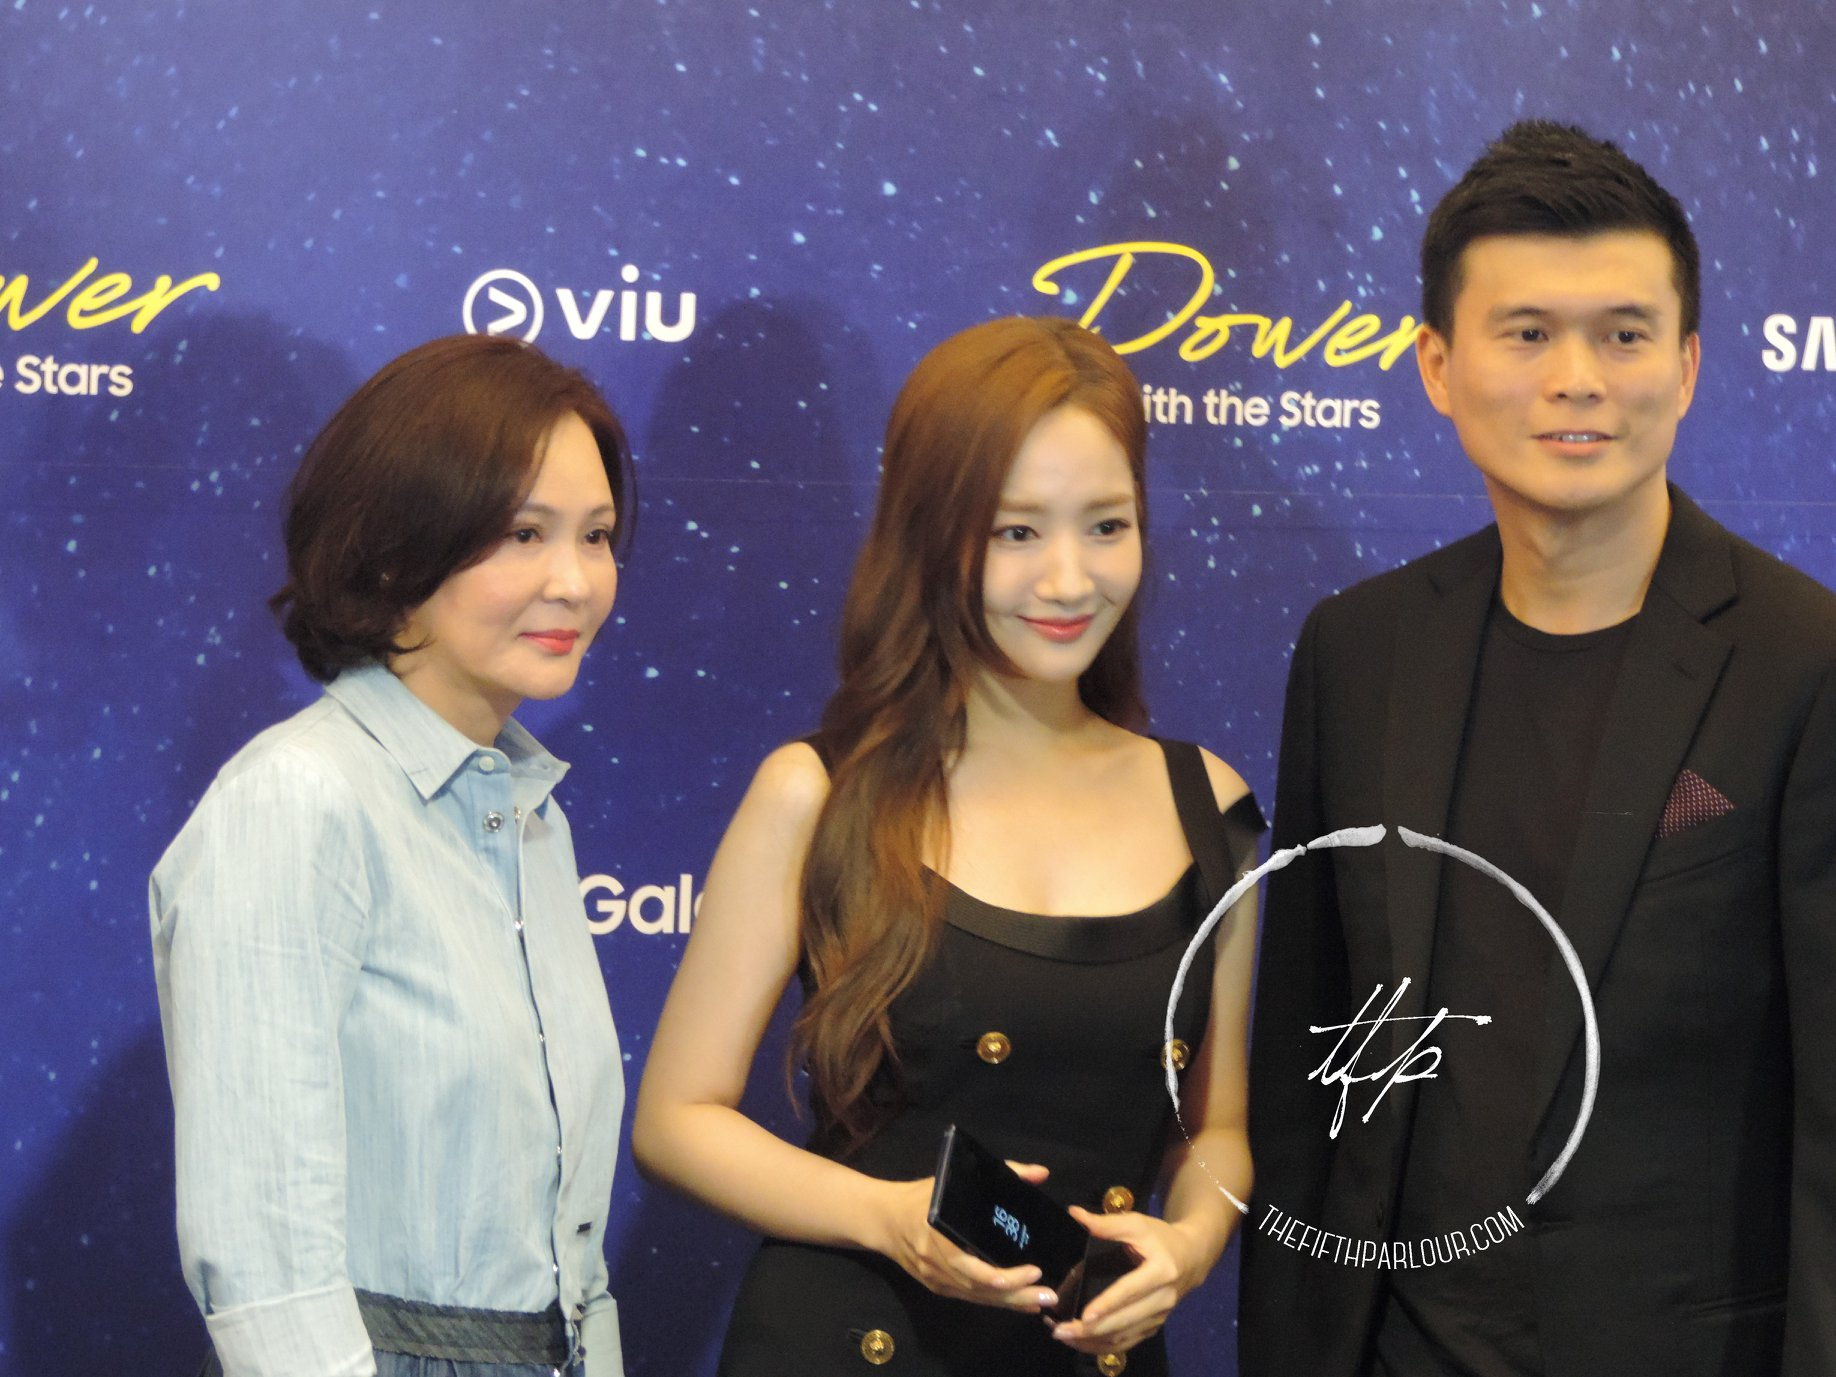 Samsung x Viu : Getting to know Park Min Young and Kim Jong